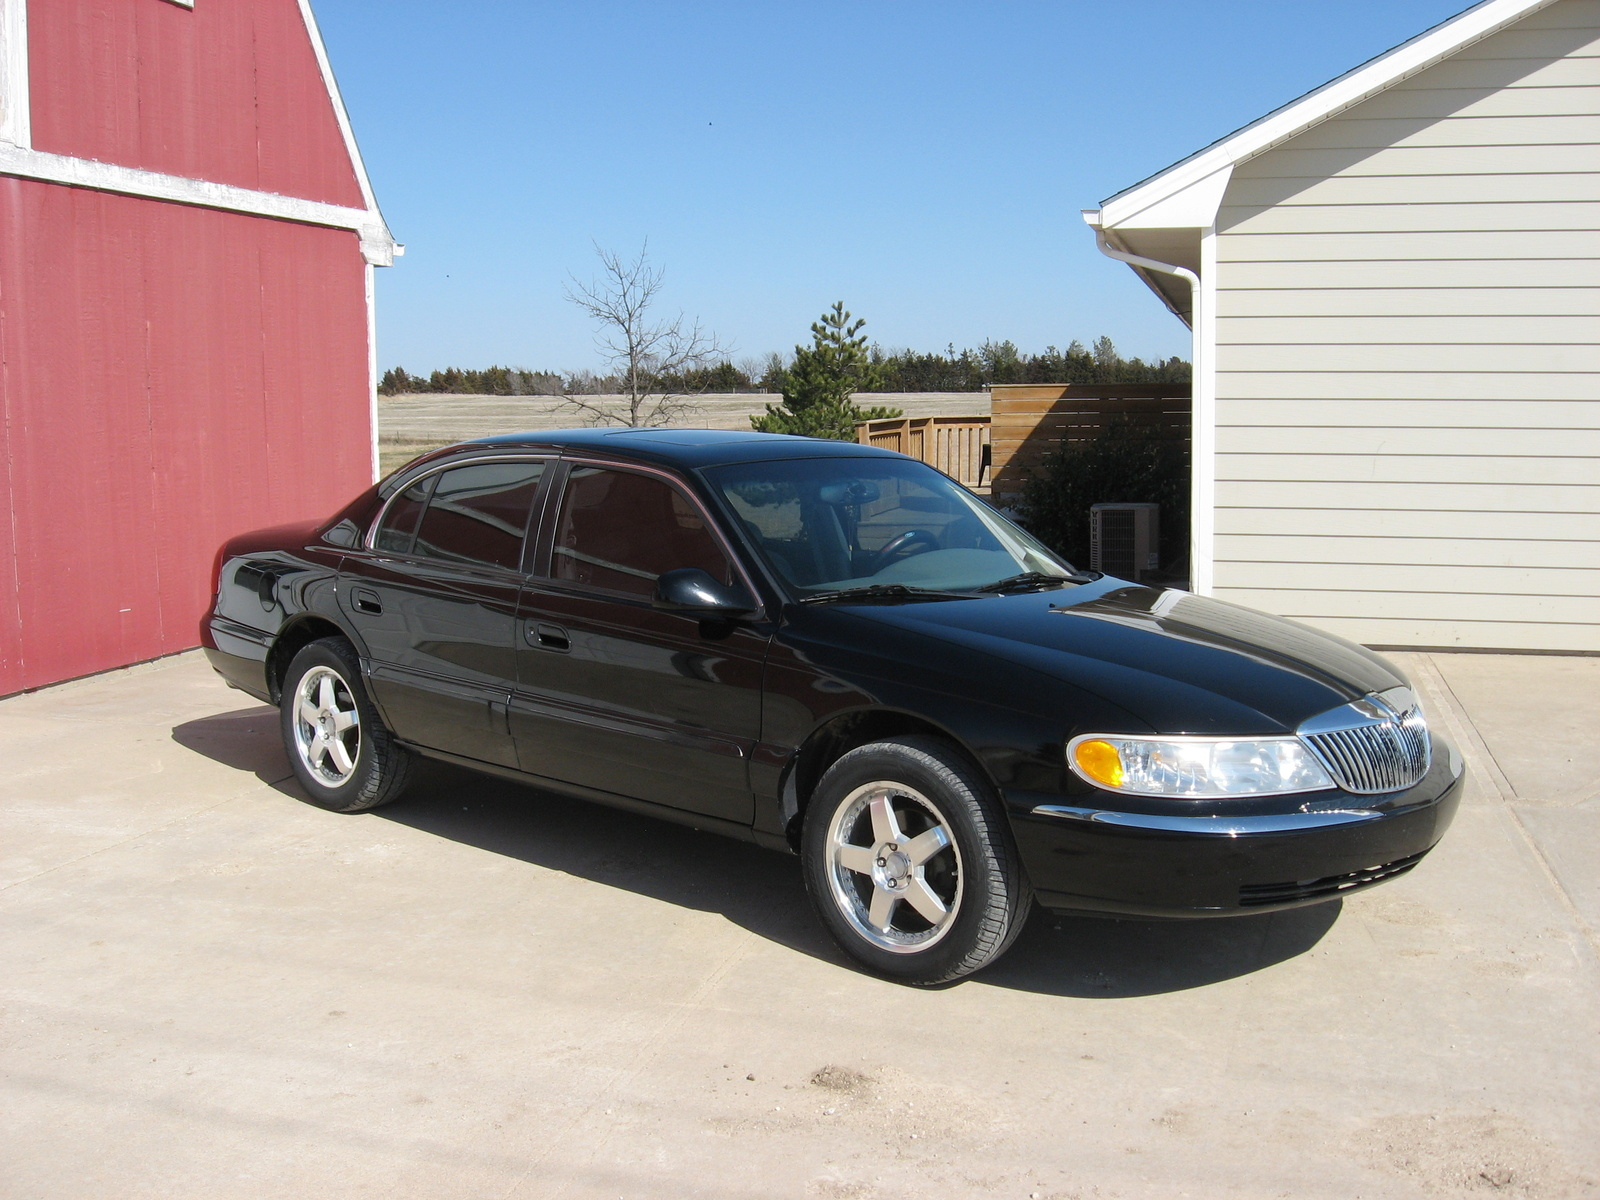 Picture of 1998 Lincoln Continental 4 Dr STD Sedan